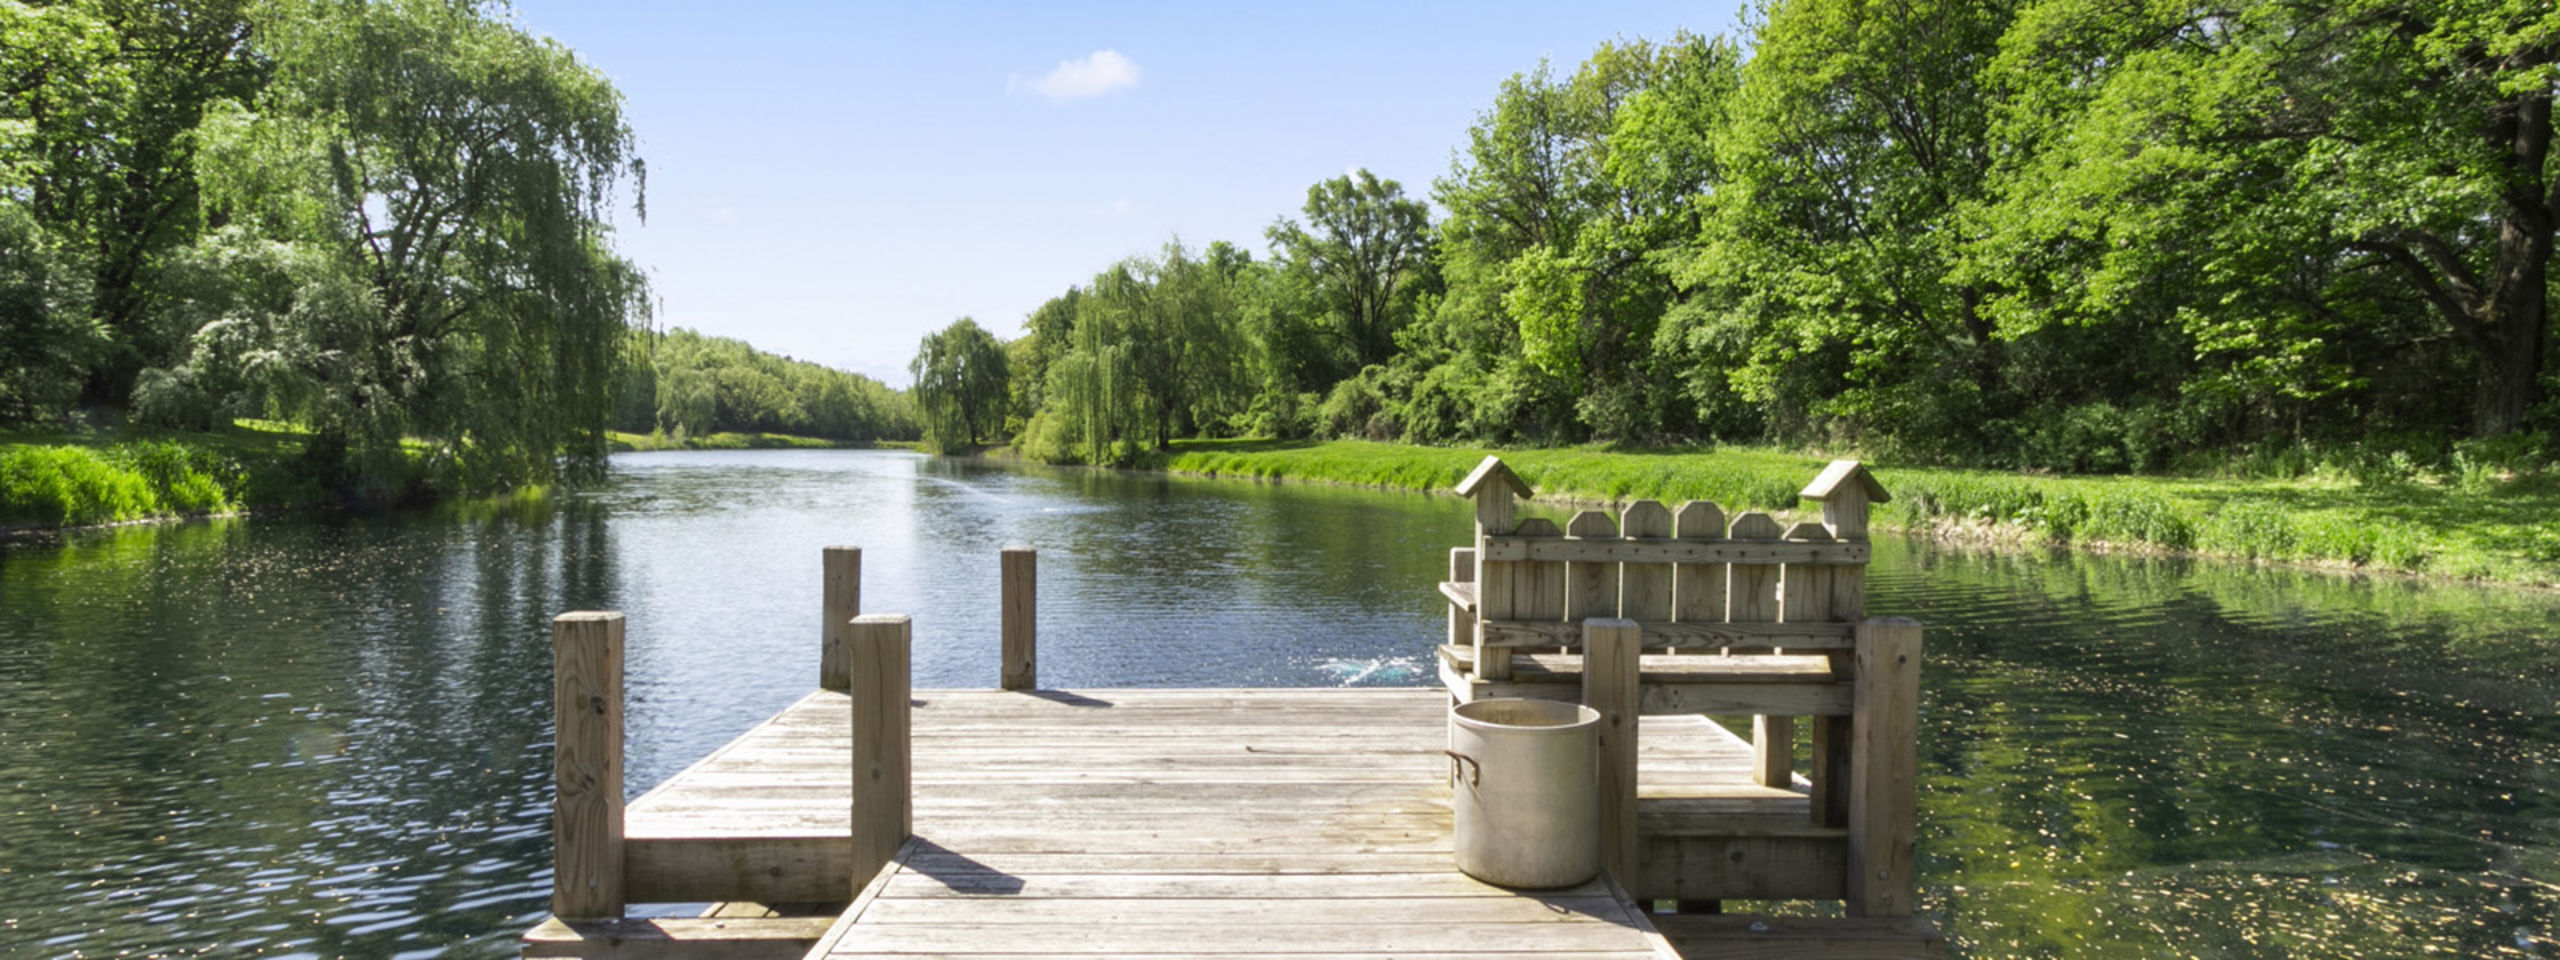 Paradise Found! Spectacular Log Lodge on 43 Wooded Acres w 4 Acre Pond - Platted & Approved for (7) 5-8 Acre Waterfront Lots